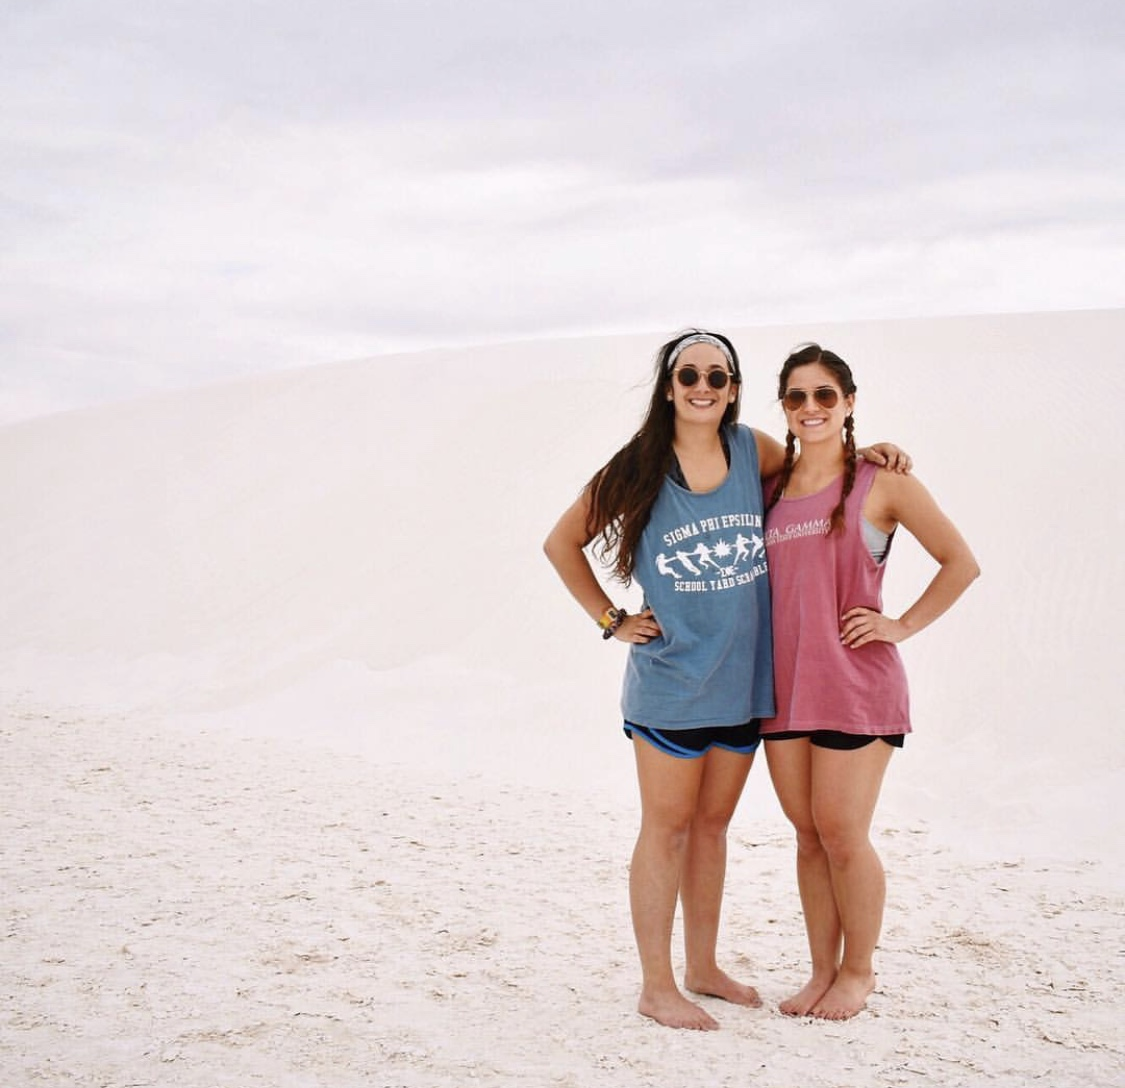 [Photo Description: Gabby (left) stands in the sand sporting a tank top, shorts, and sunglasses.]